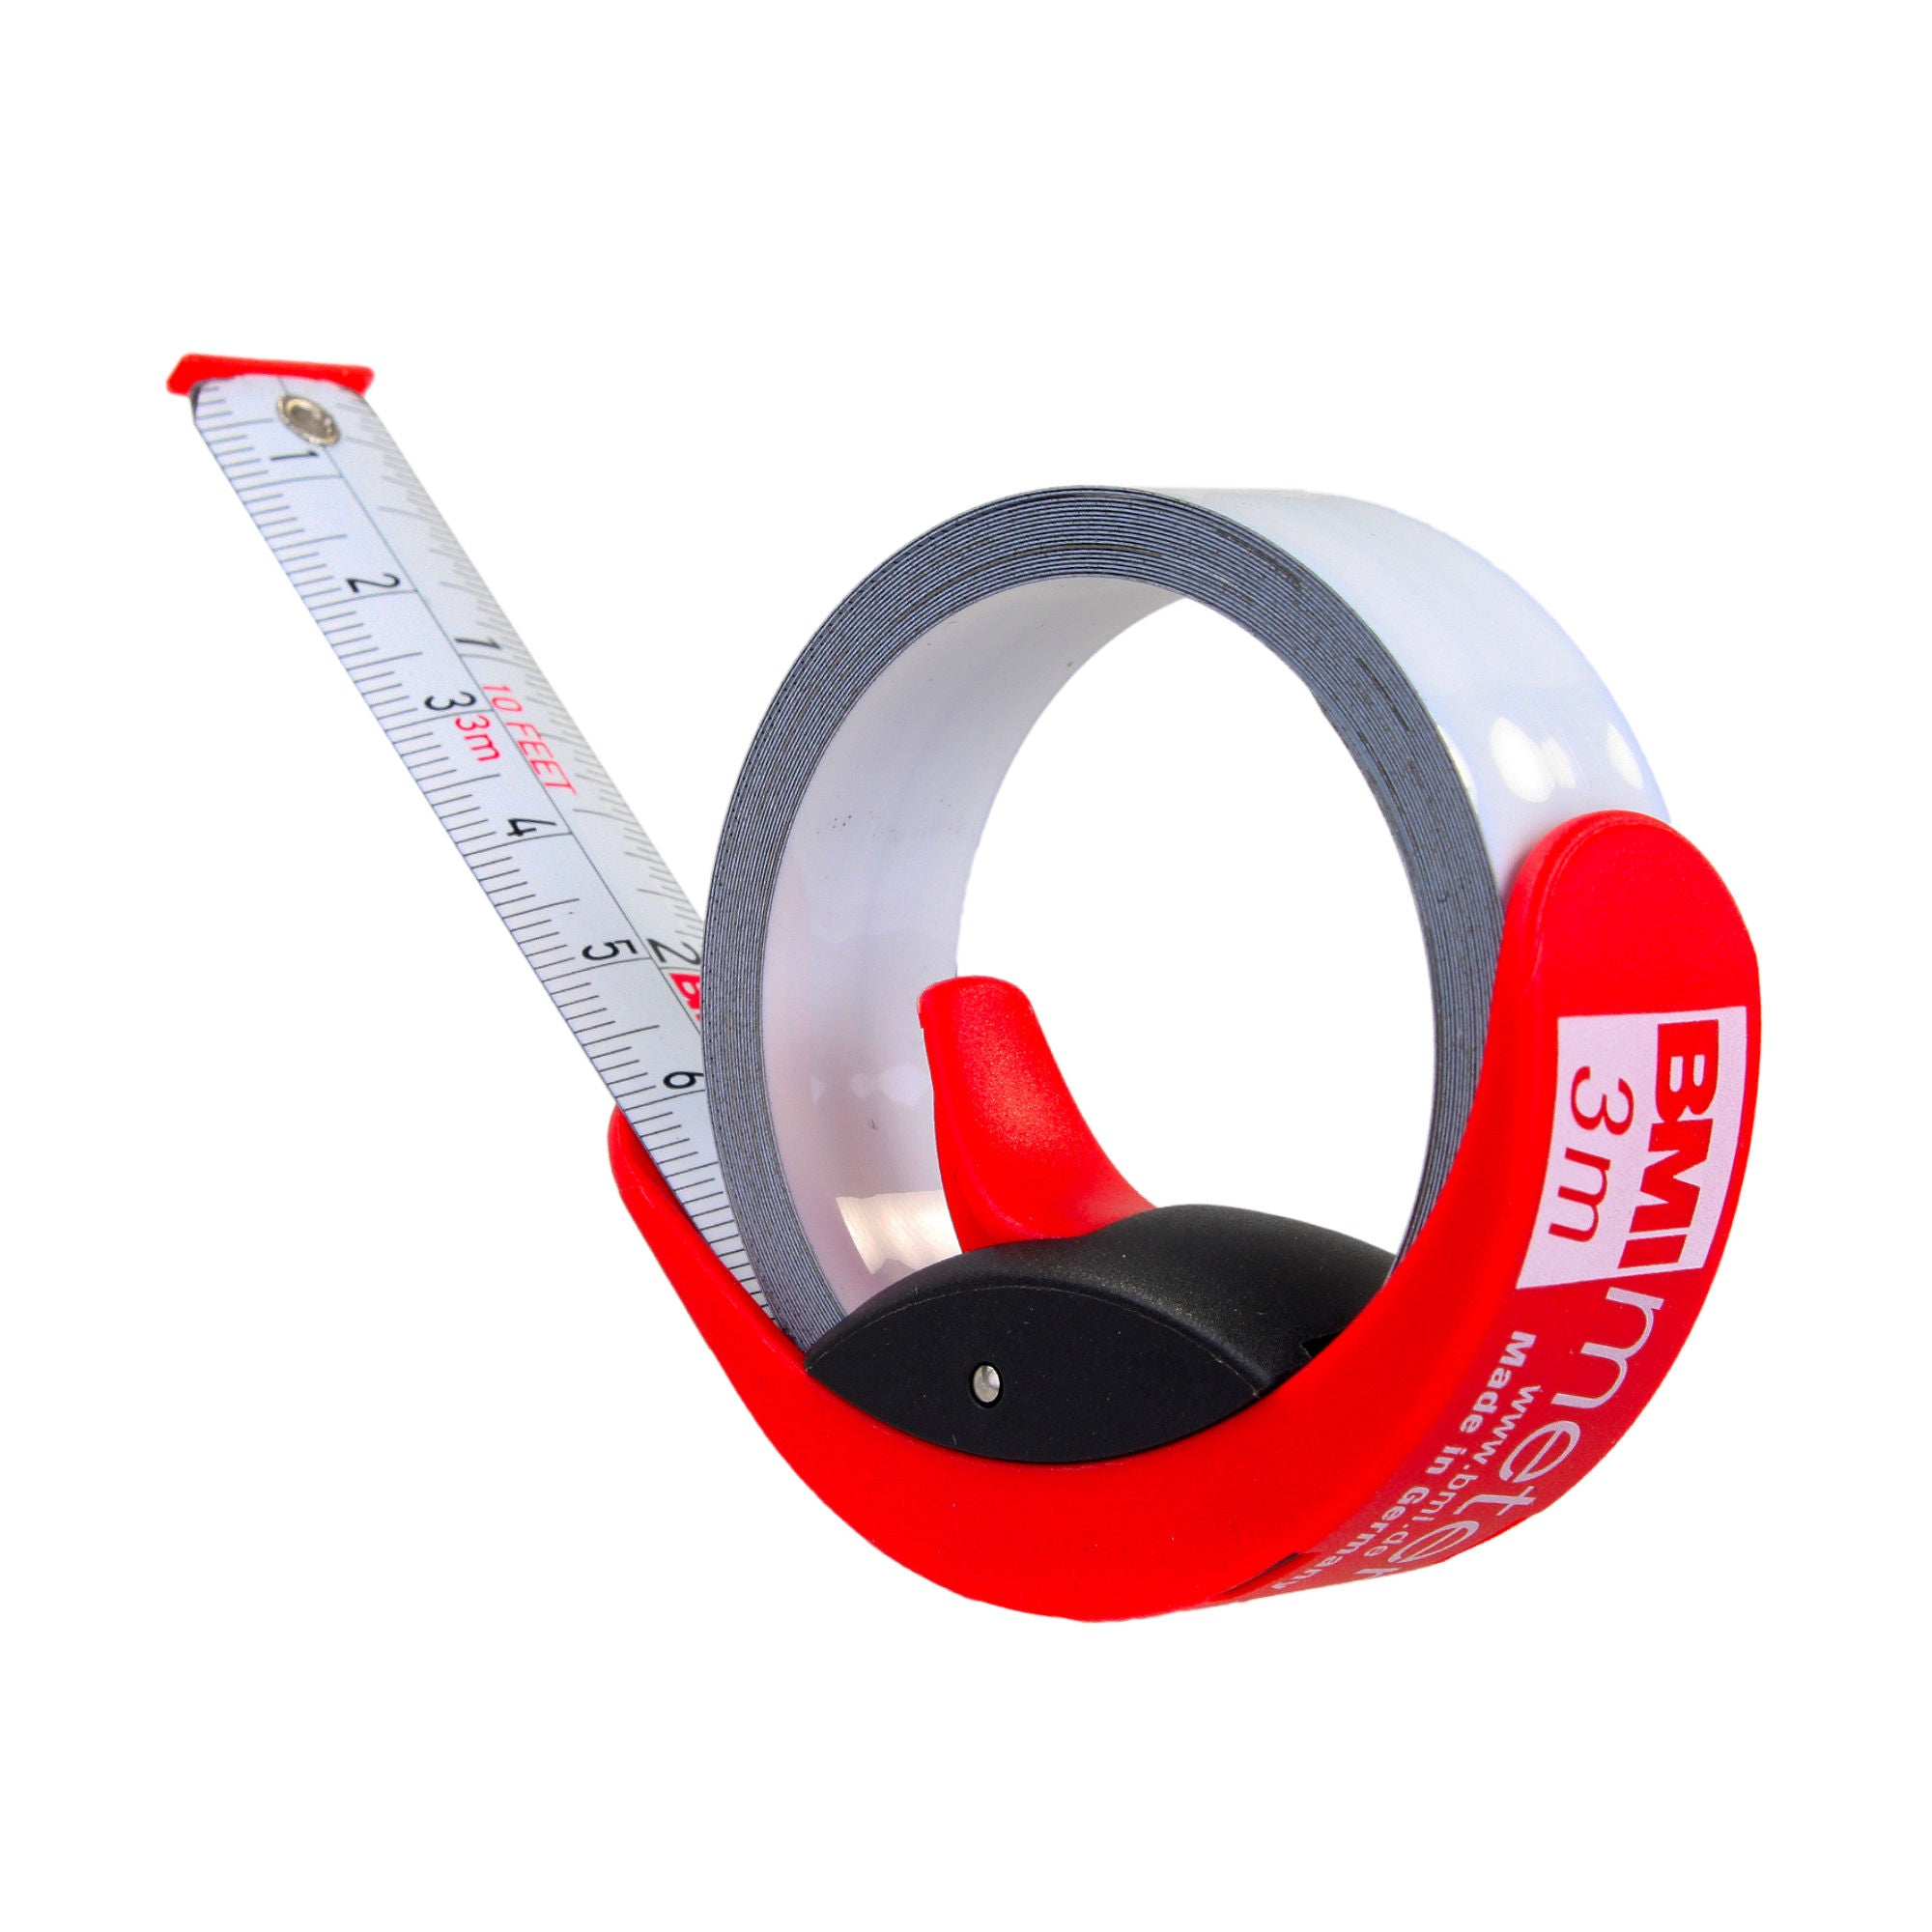 BMI Meter 2-in-1 Tape Measure and Ruler 3m/10ft